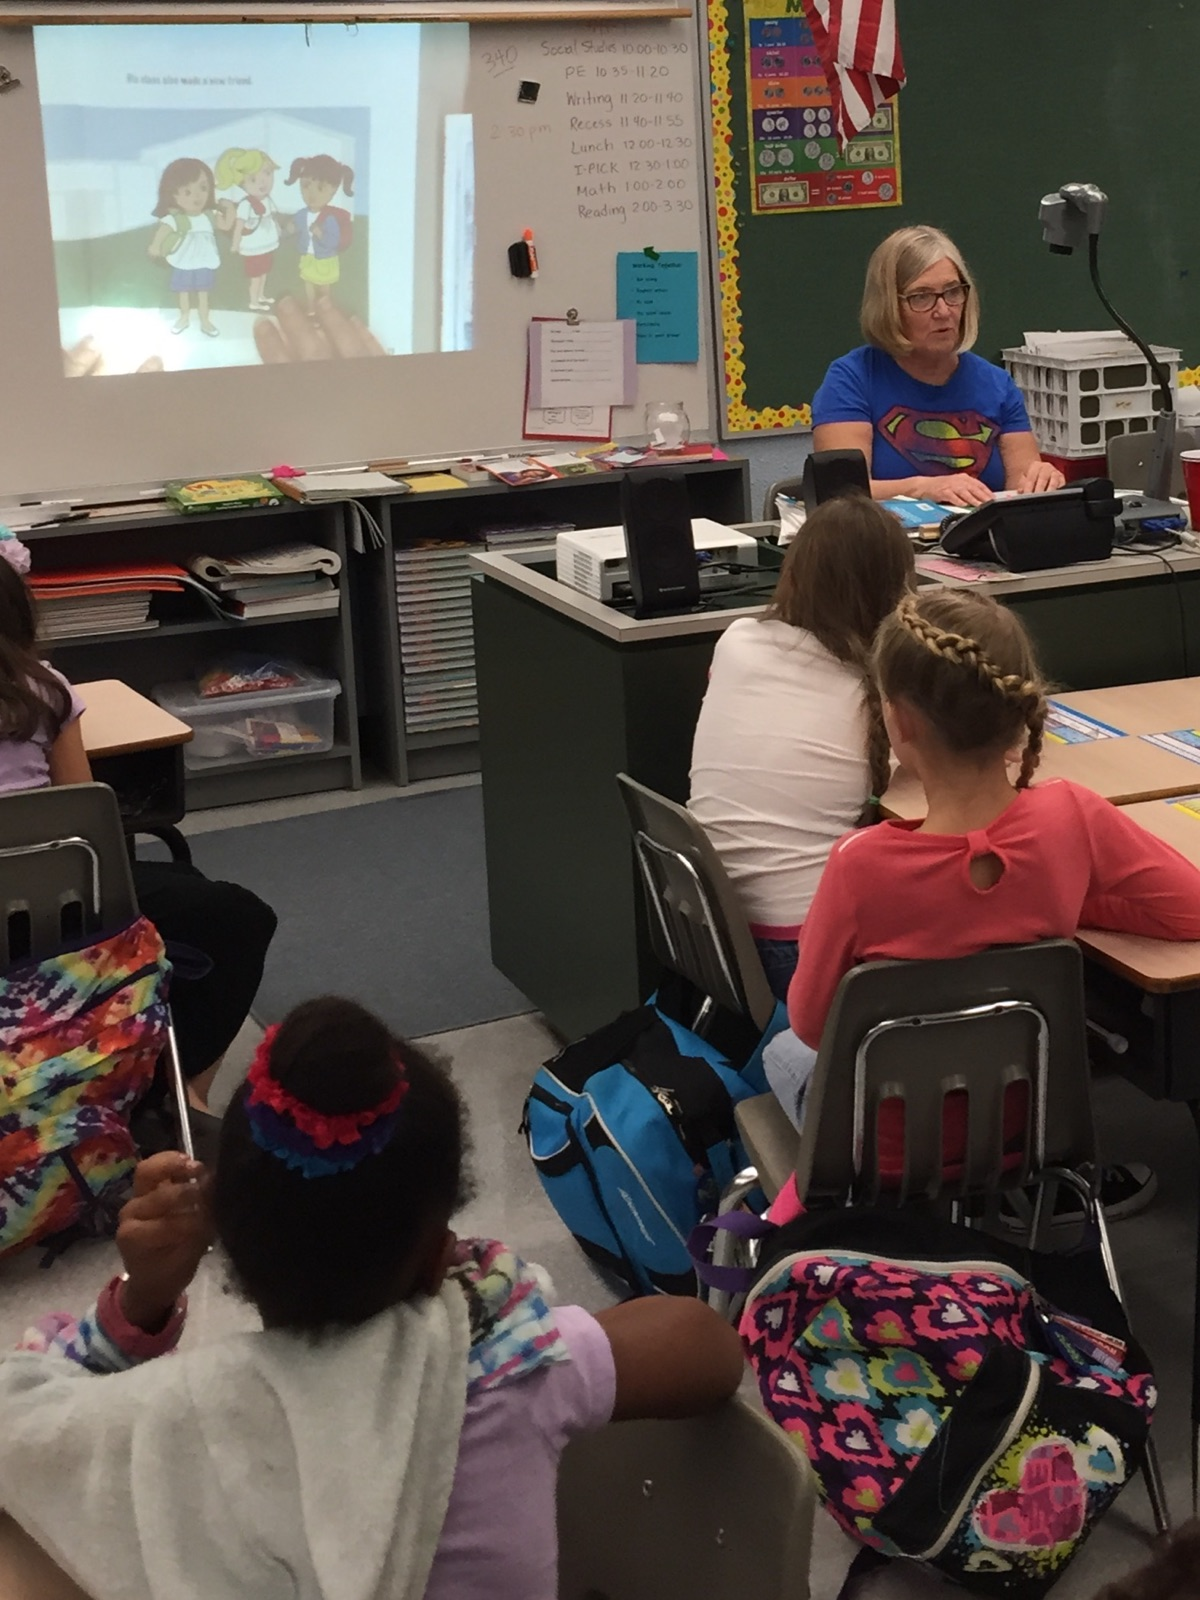 Ms. Suzanne reading to second graders, showing pictures of the story on the overhead projector.